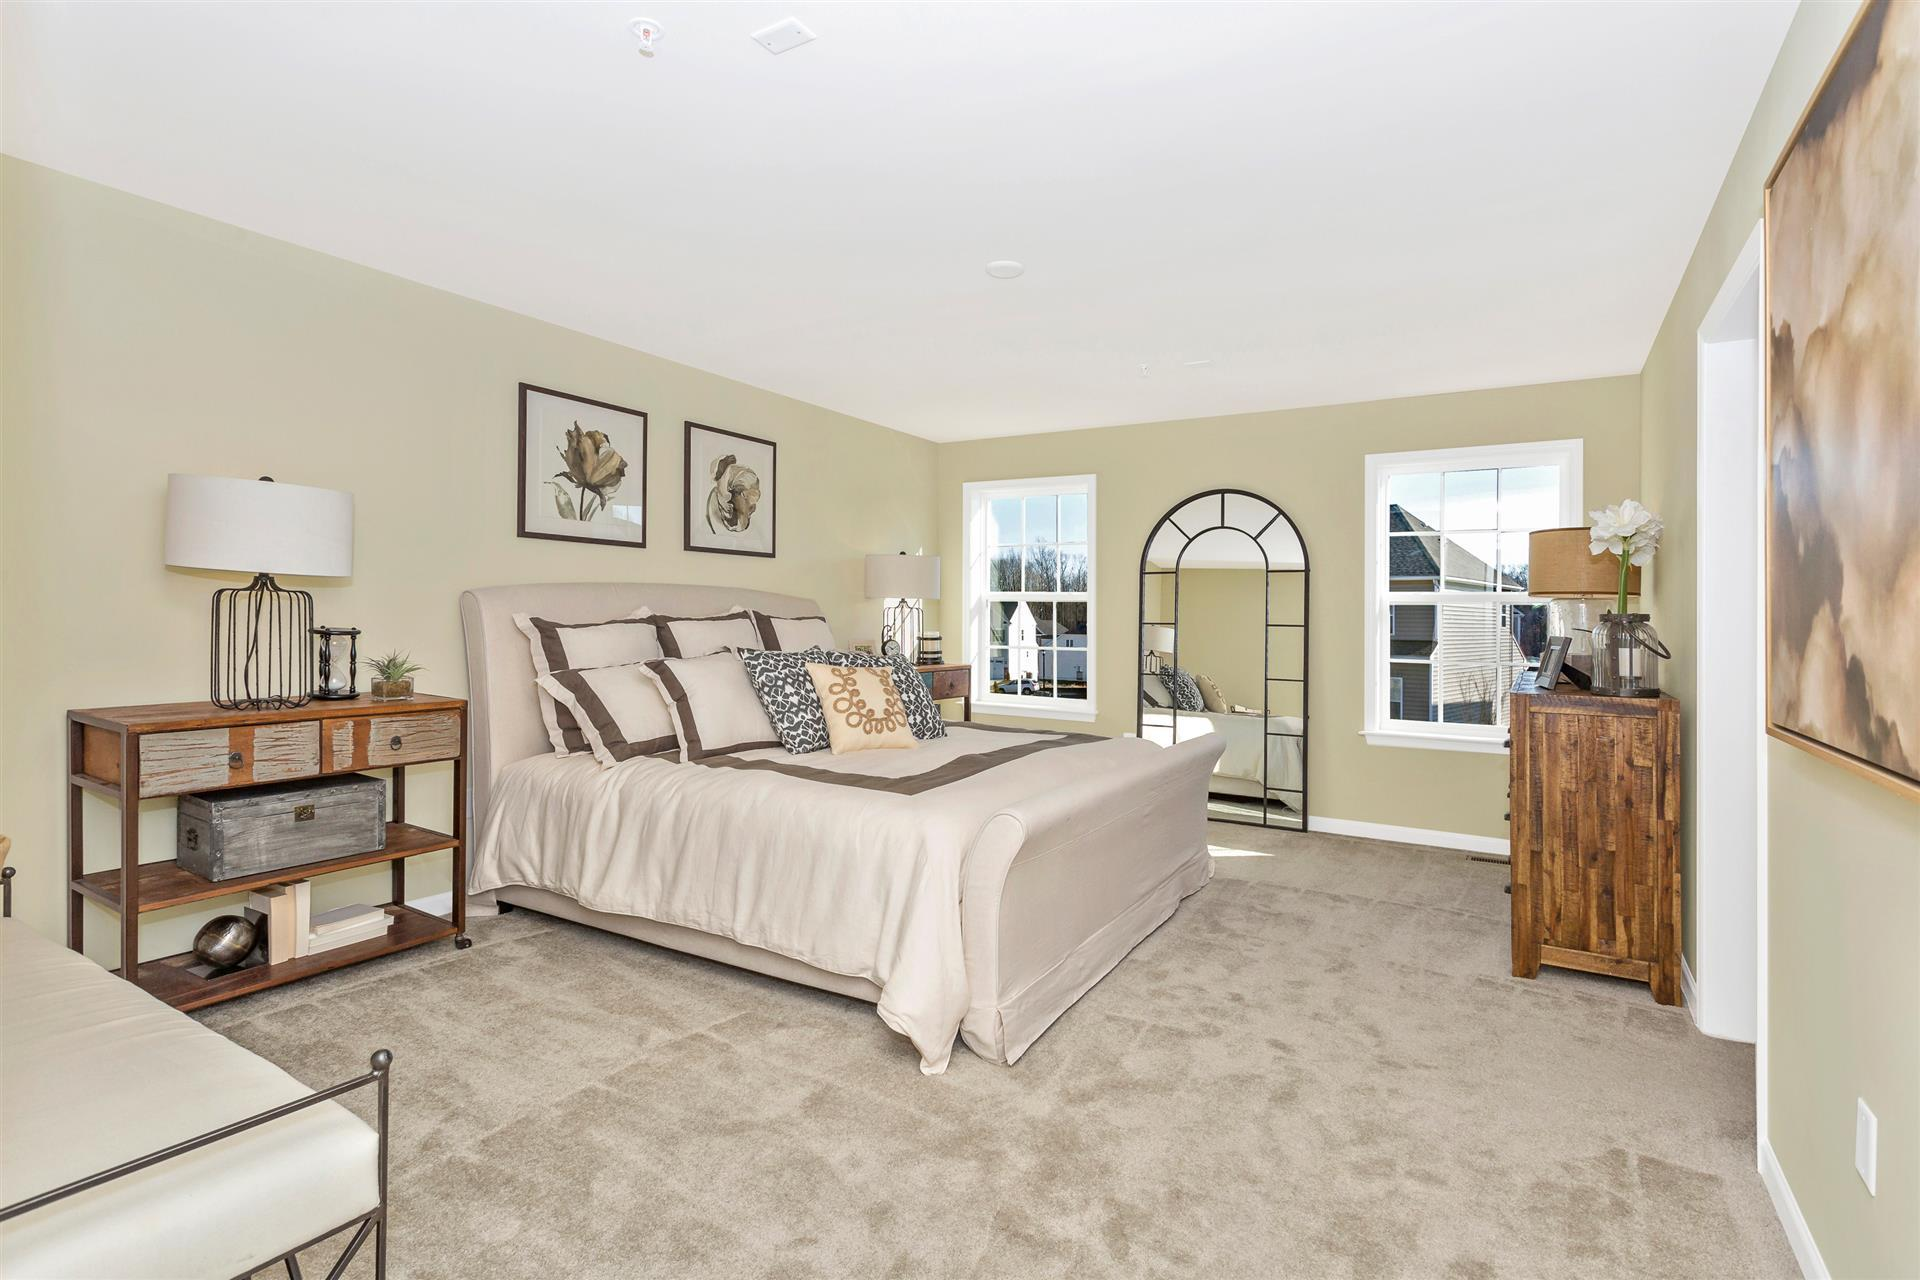 Bedroom featured in the Newbury II By Dan Ryan Builders in Washington, MD